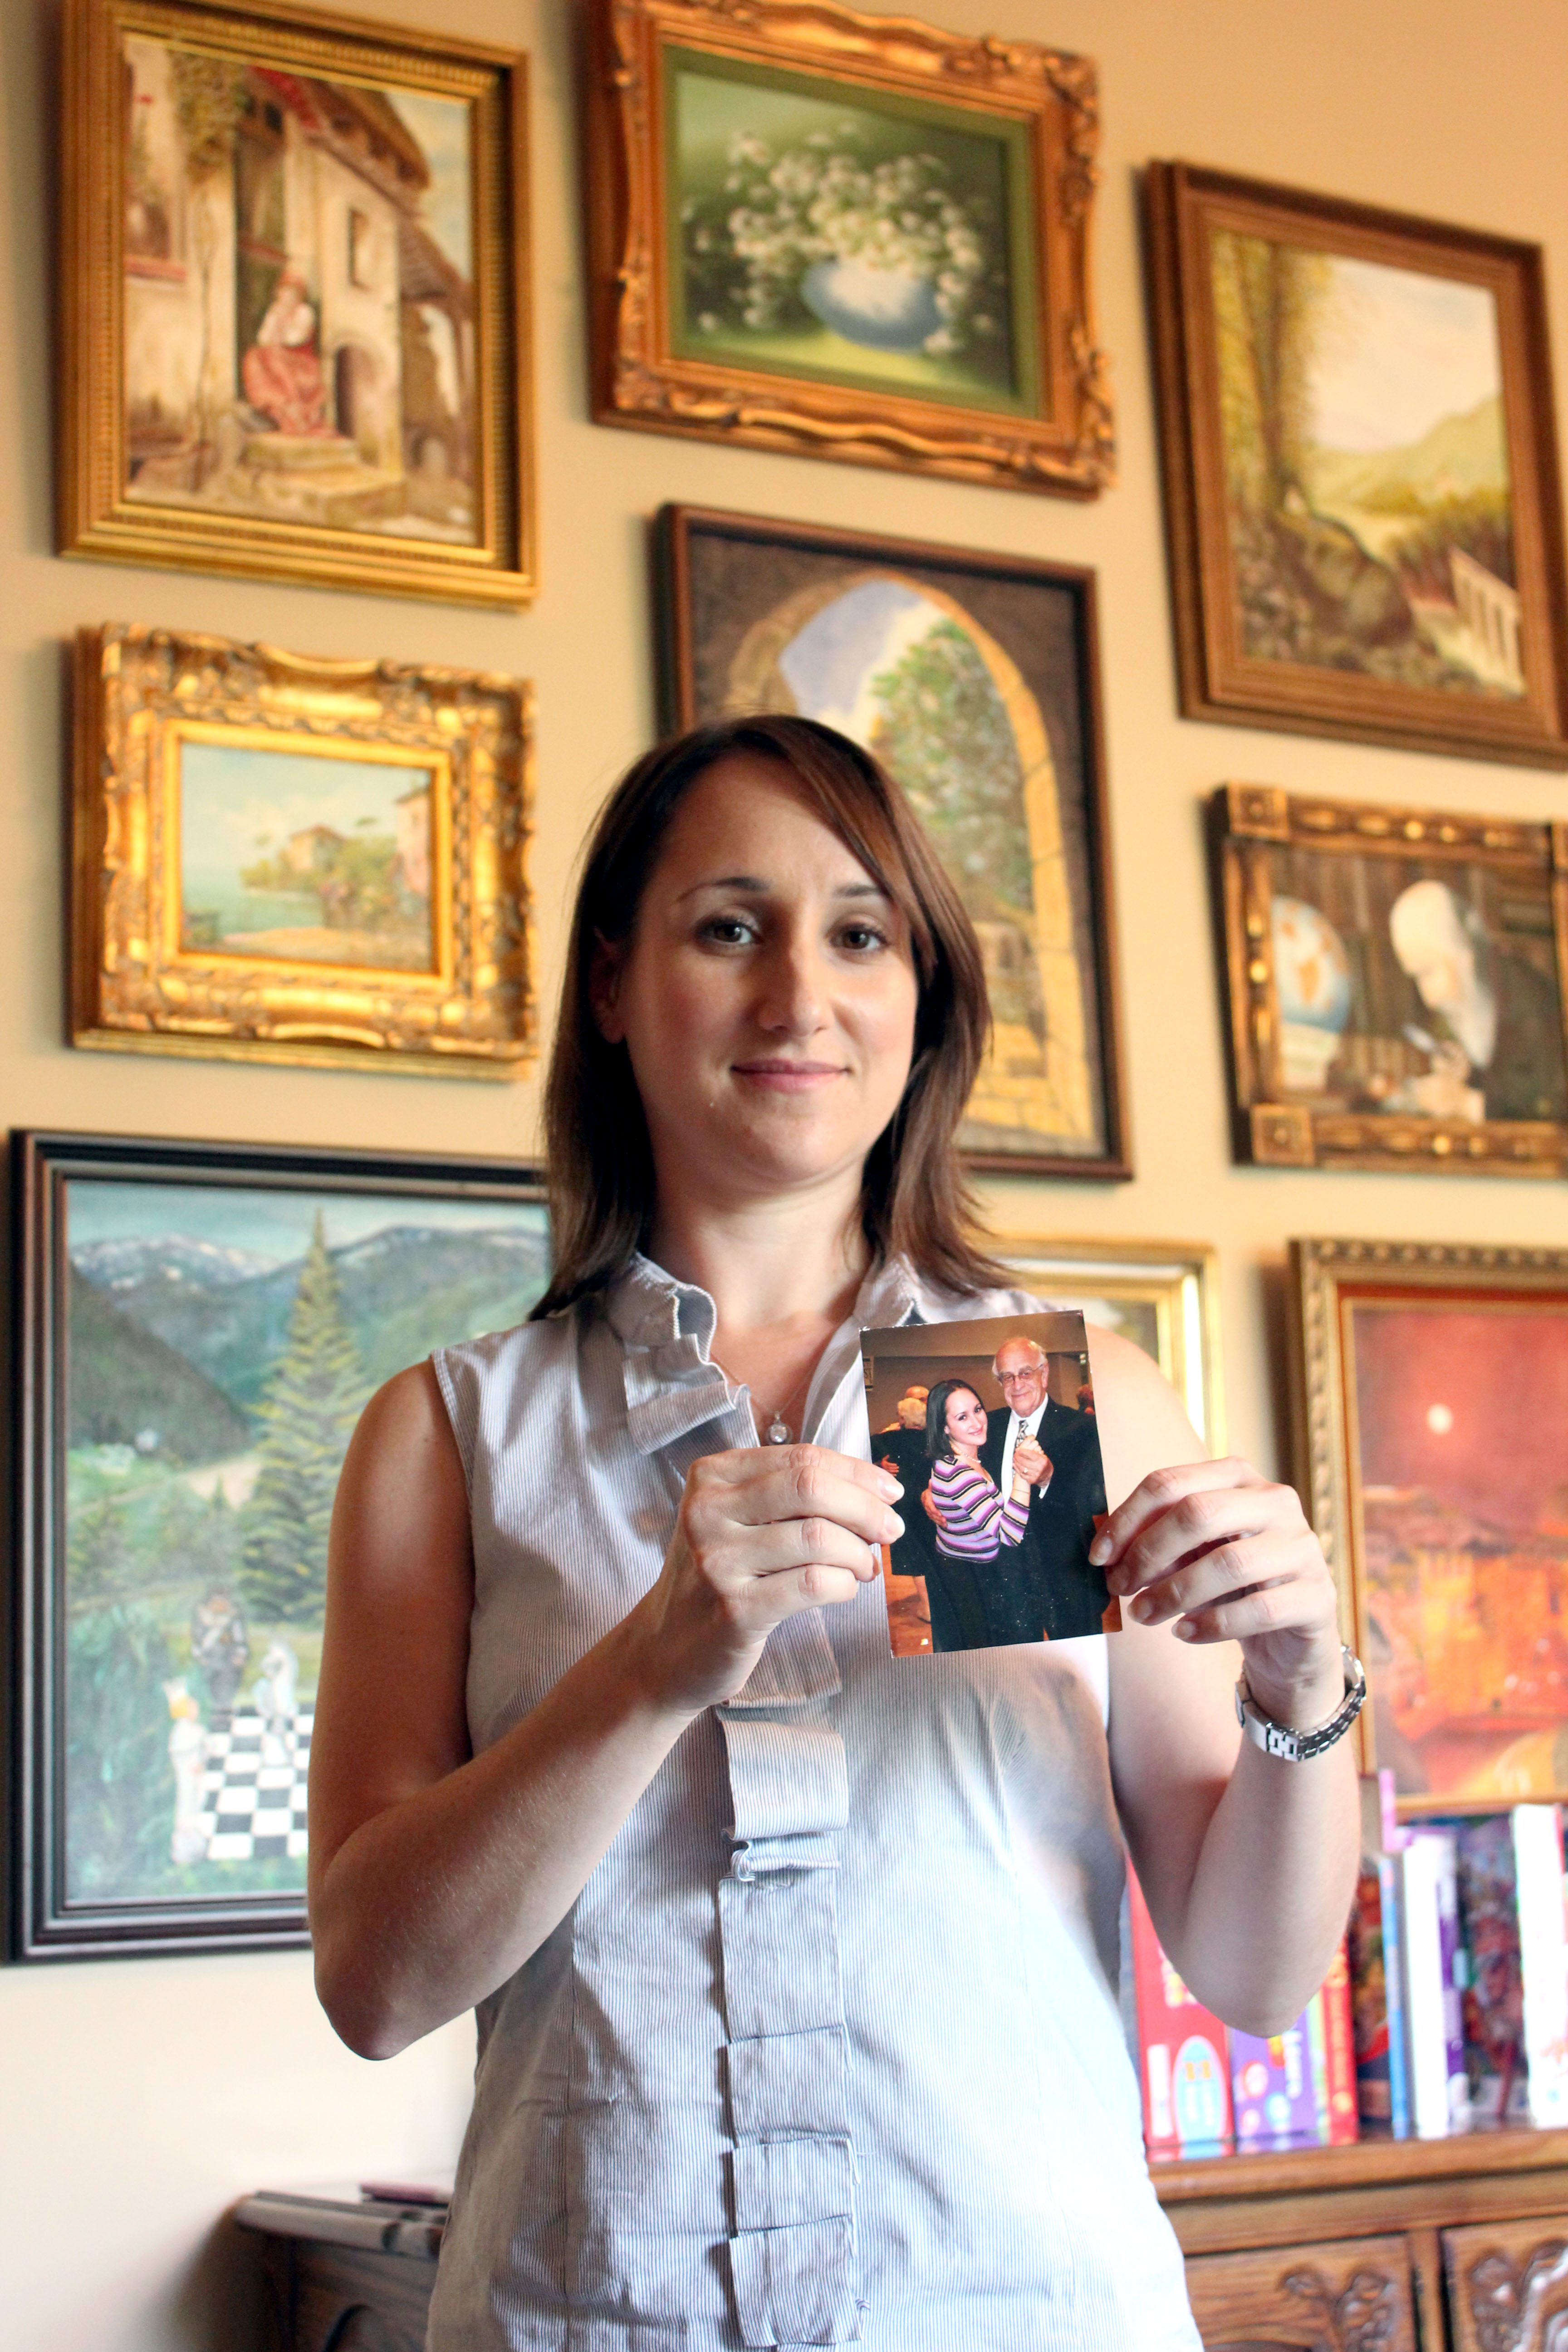 Julie Kronenberg holds a photo of her dancing with her grandfather, Jacob Hennenberg, a Holocaust survivor during a 2001 Kol Israel dinner held in honor of him. Behind her are several of her grandfather's paintings, and the Beachwood house in which she now lives was once her grandparents' home.